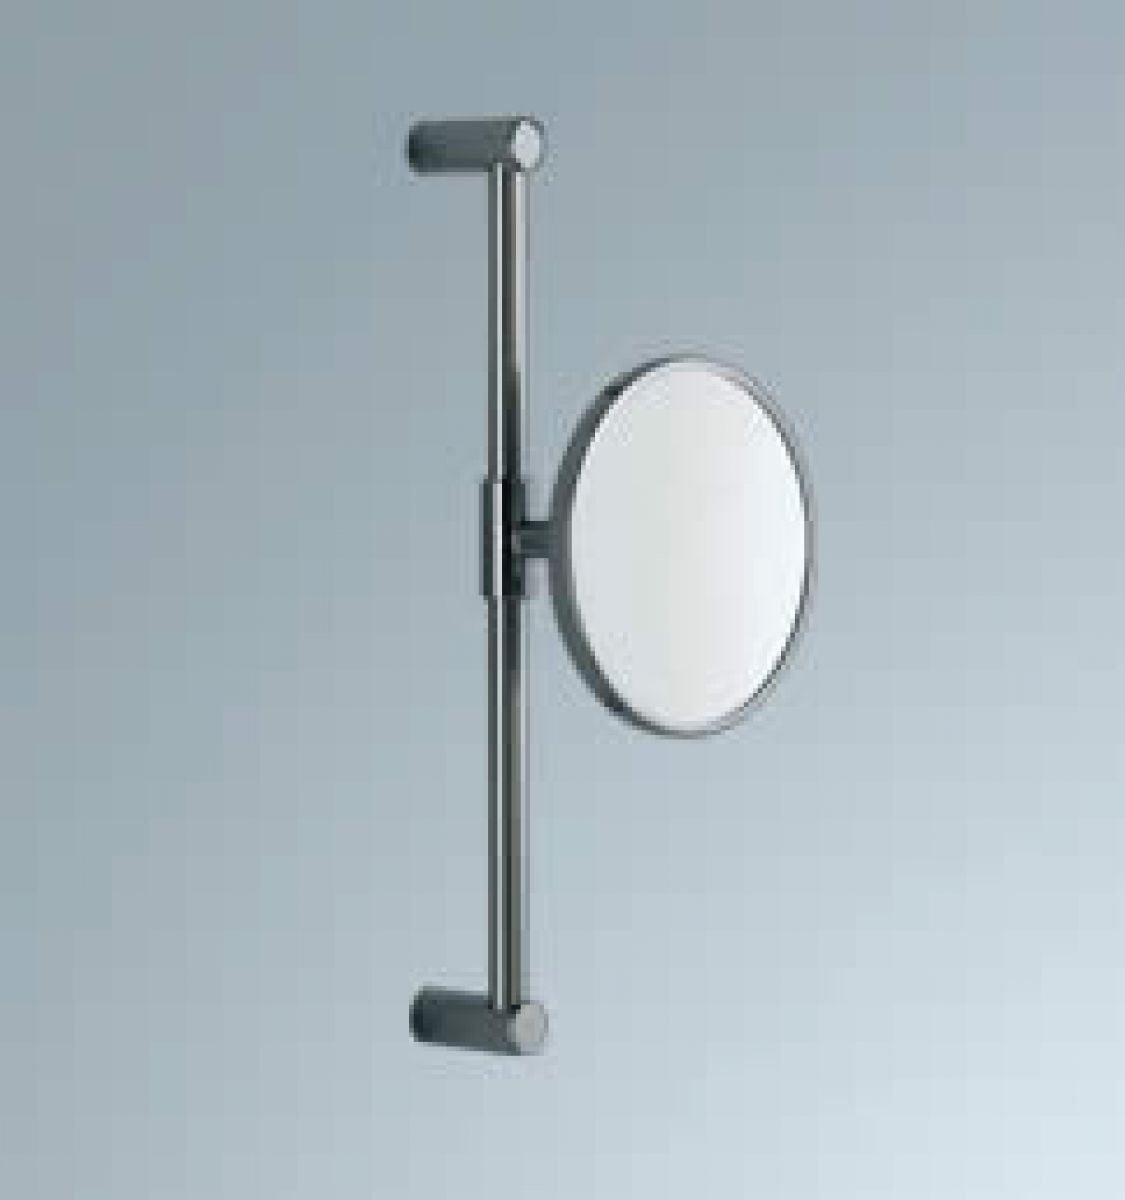 Wall Mounted Magnifying Mirror 15x bathroom magnifying mirror mirrored bathroom wall cabinets